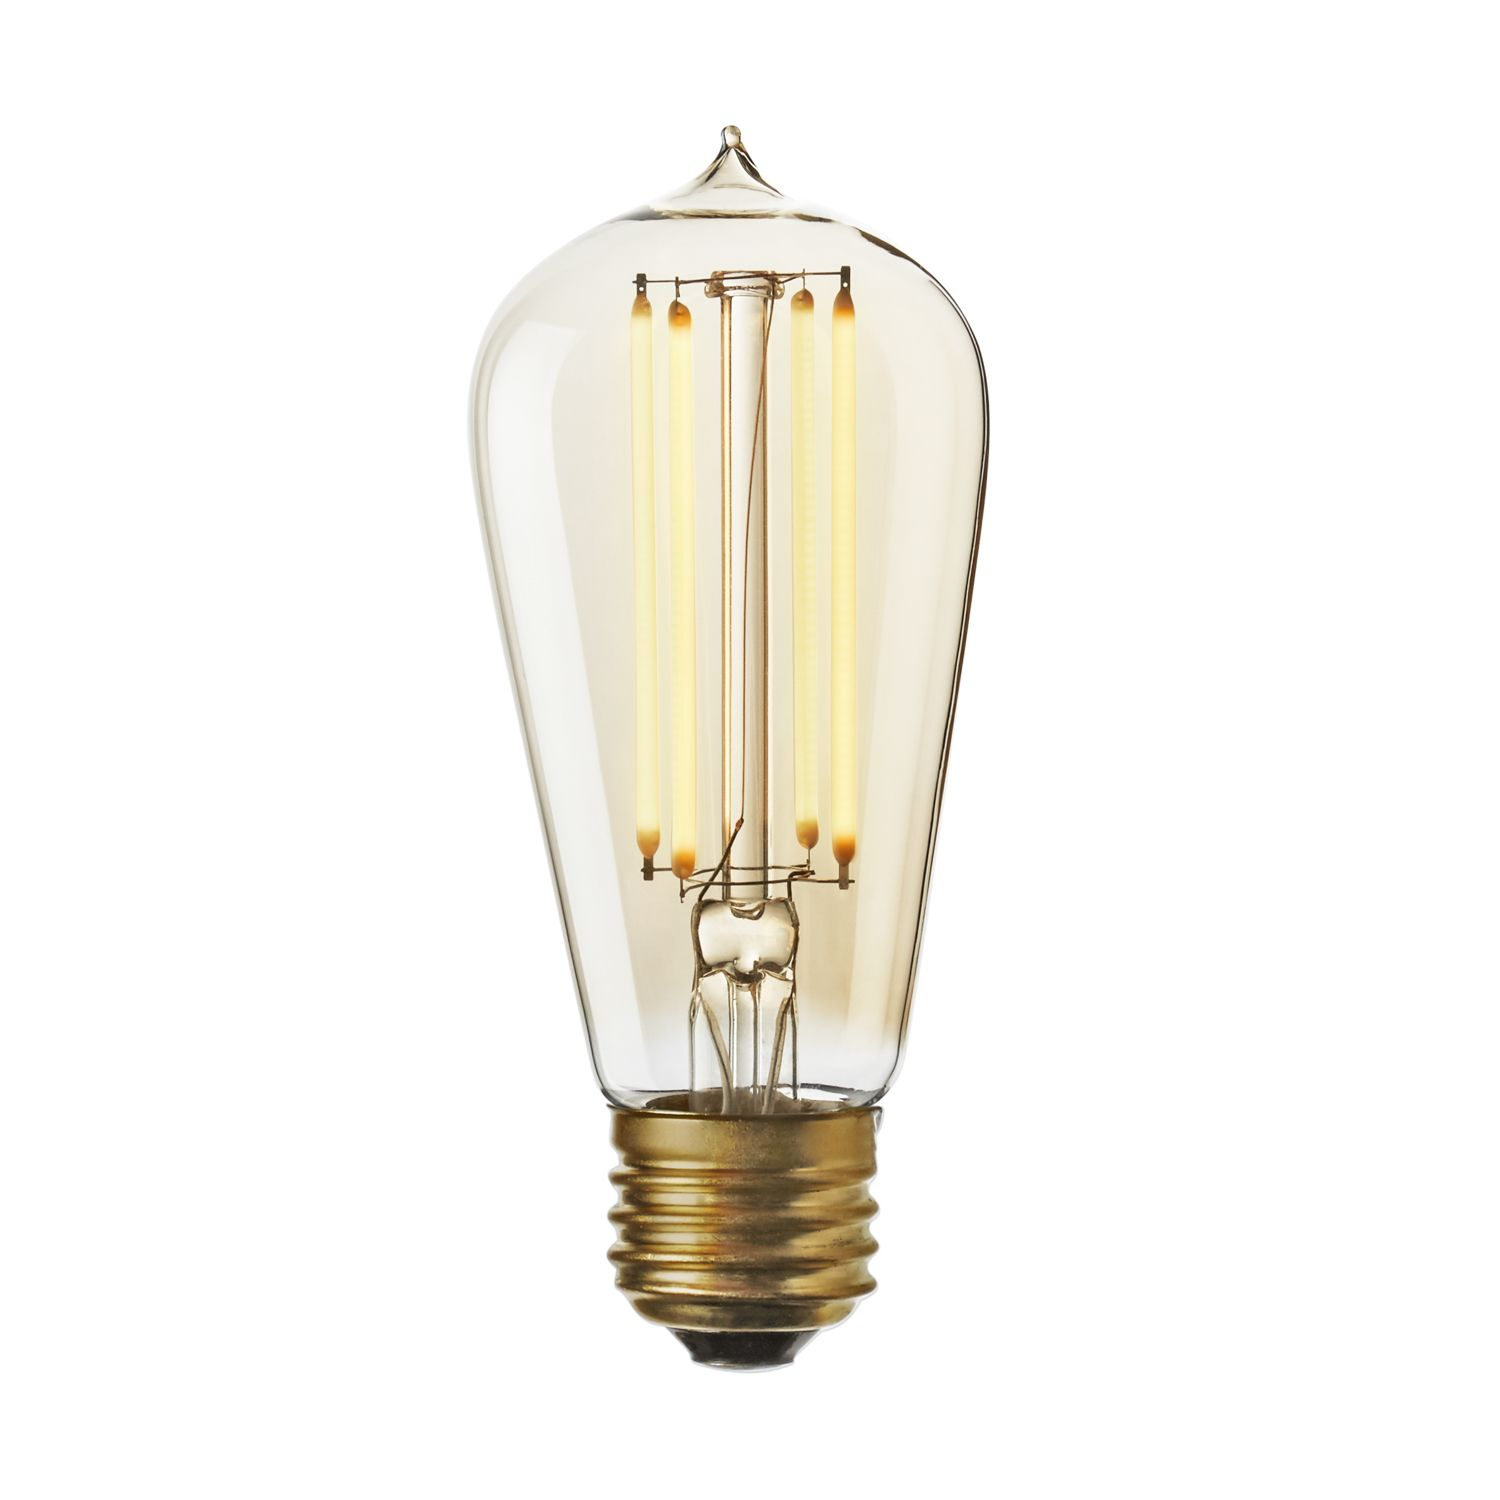 Led Edison Bulb Lights Bulbs Led Edison Bulbs Bushwick Led St18